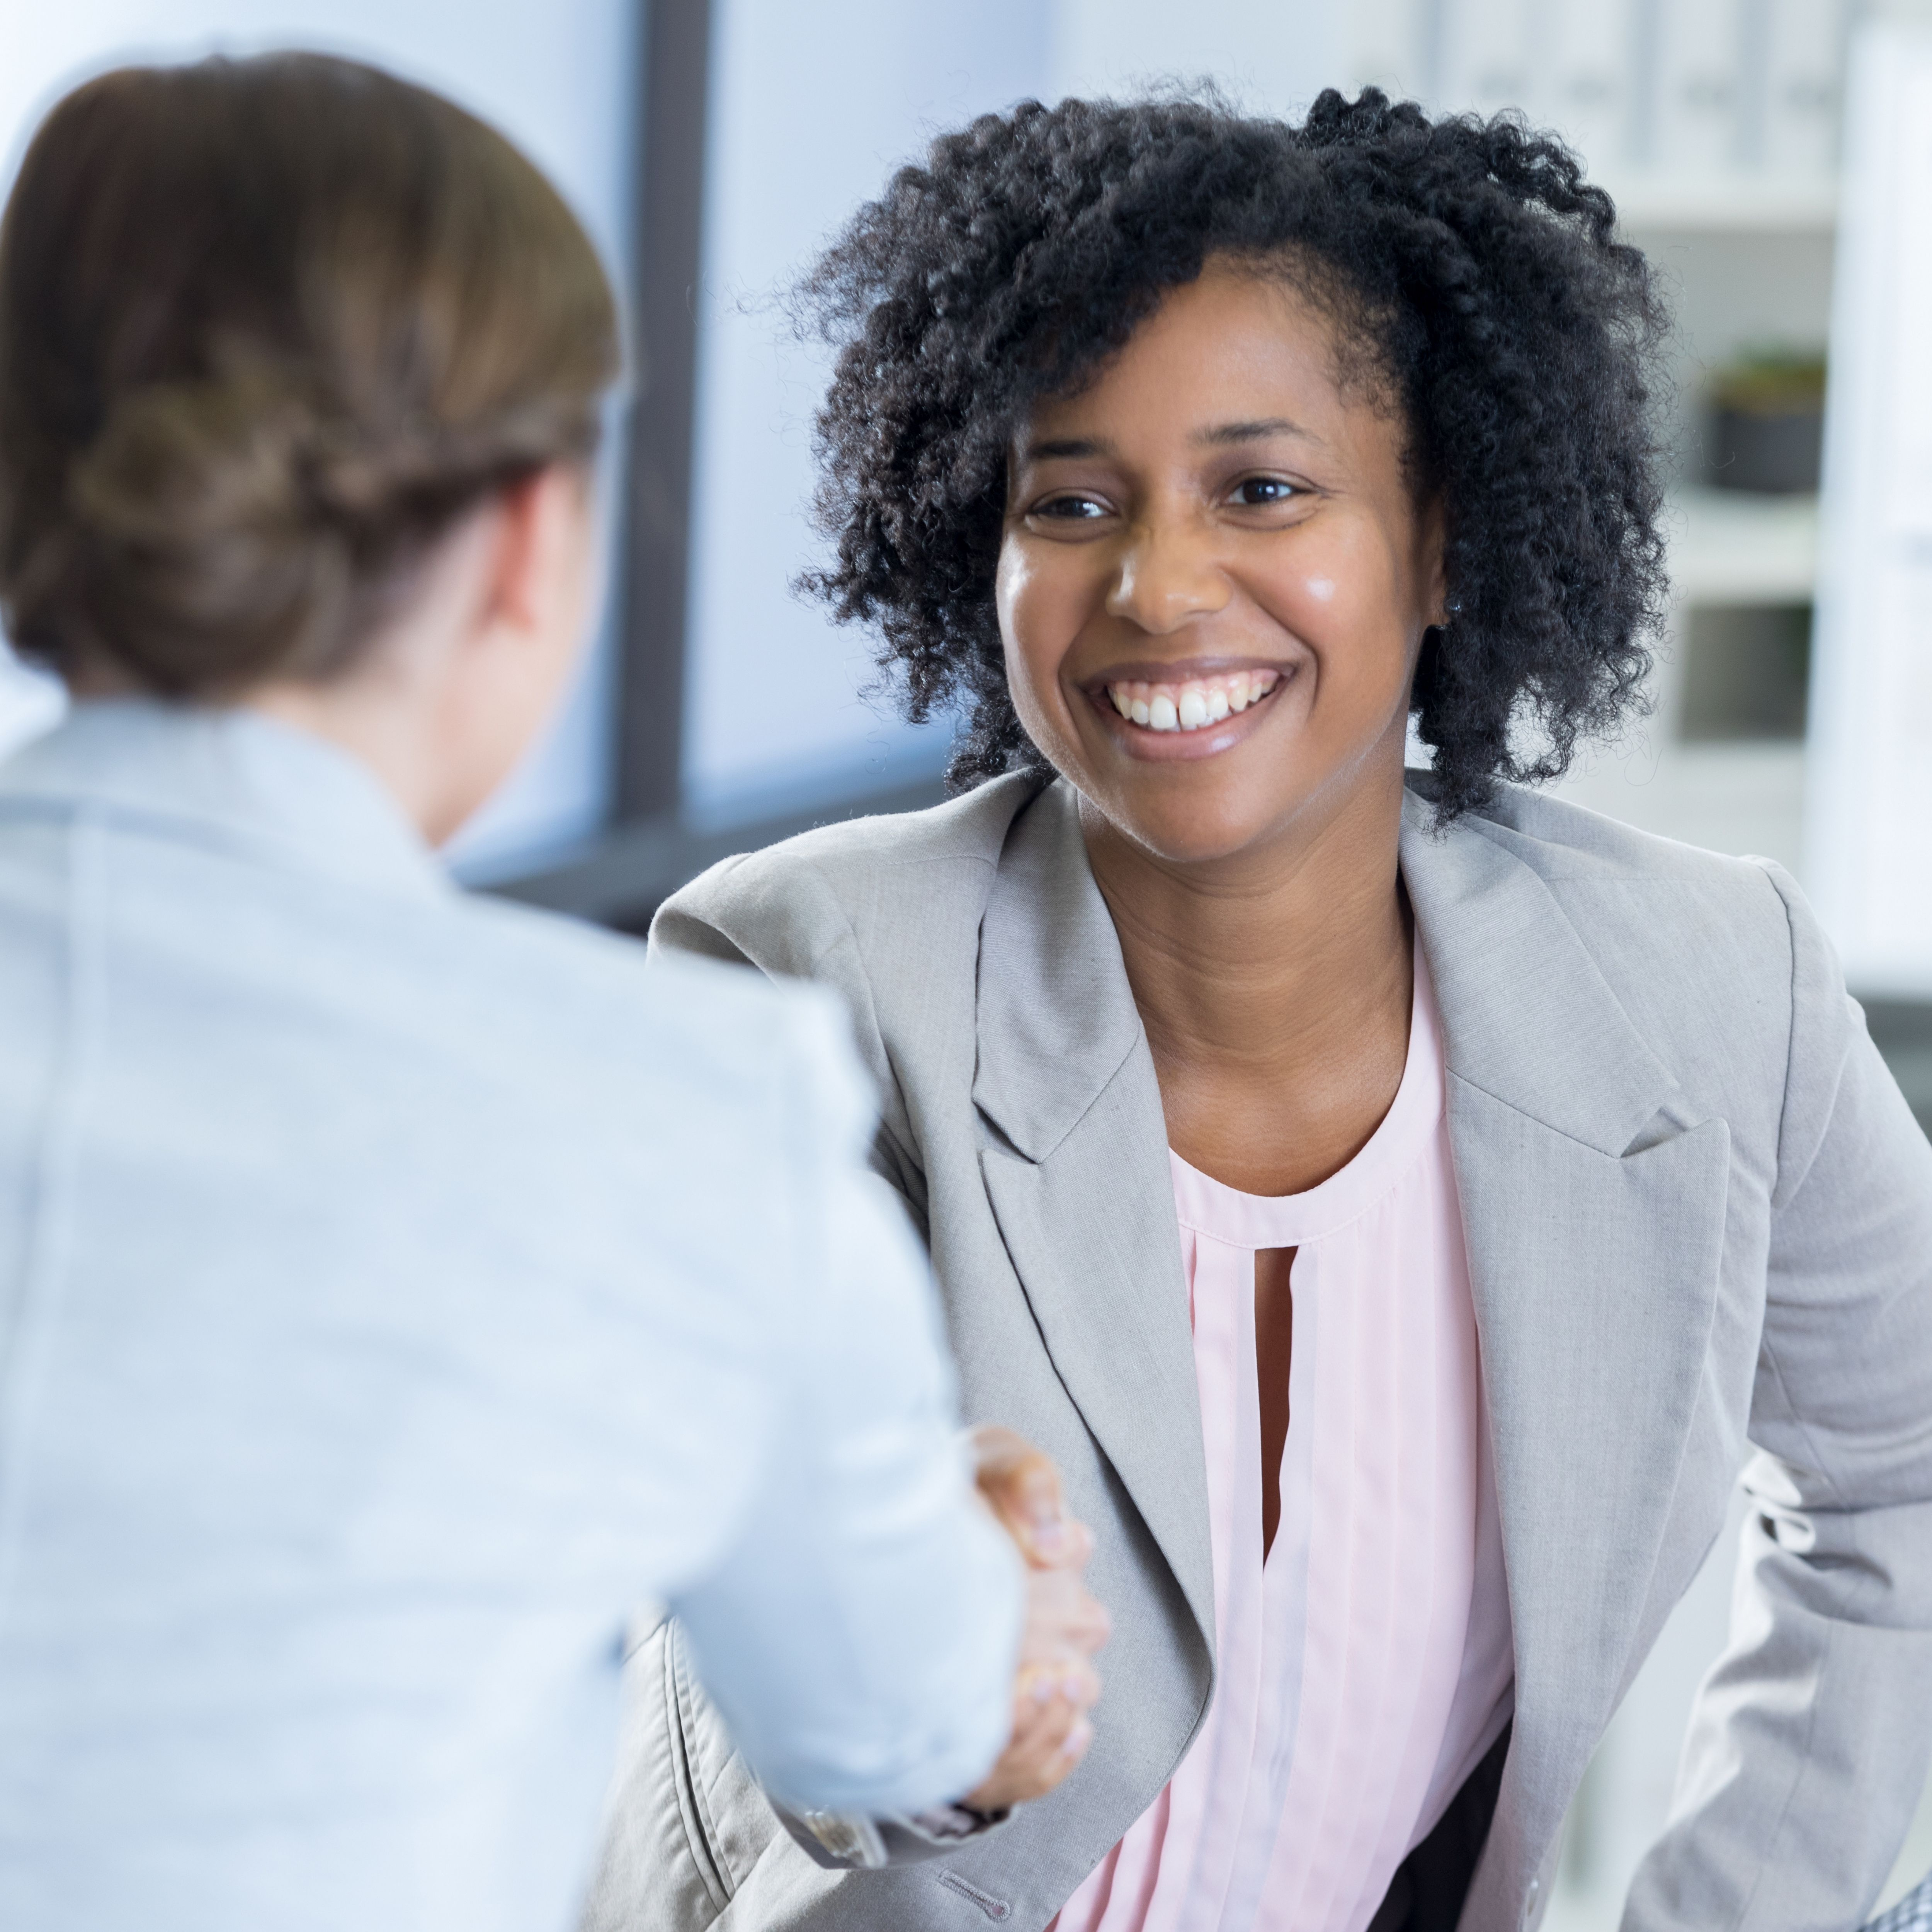 a woman with glorious har is welcoming a client